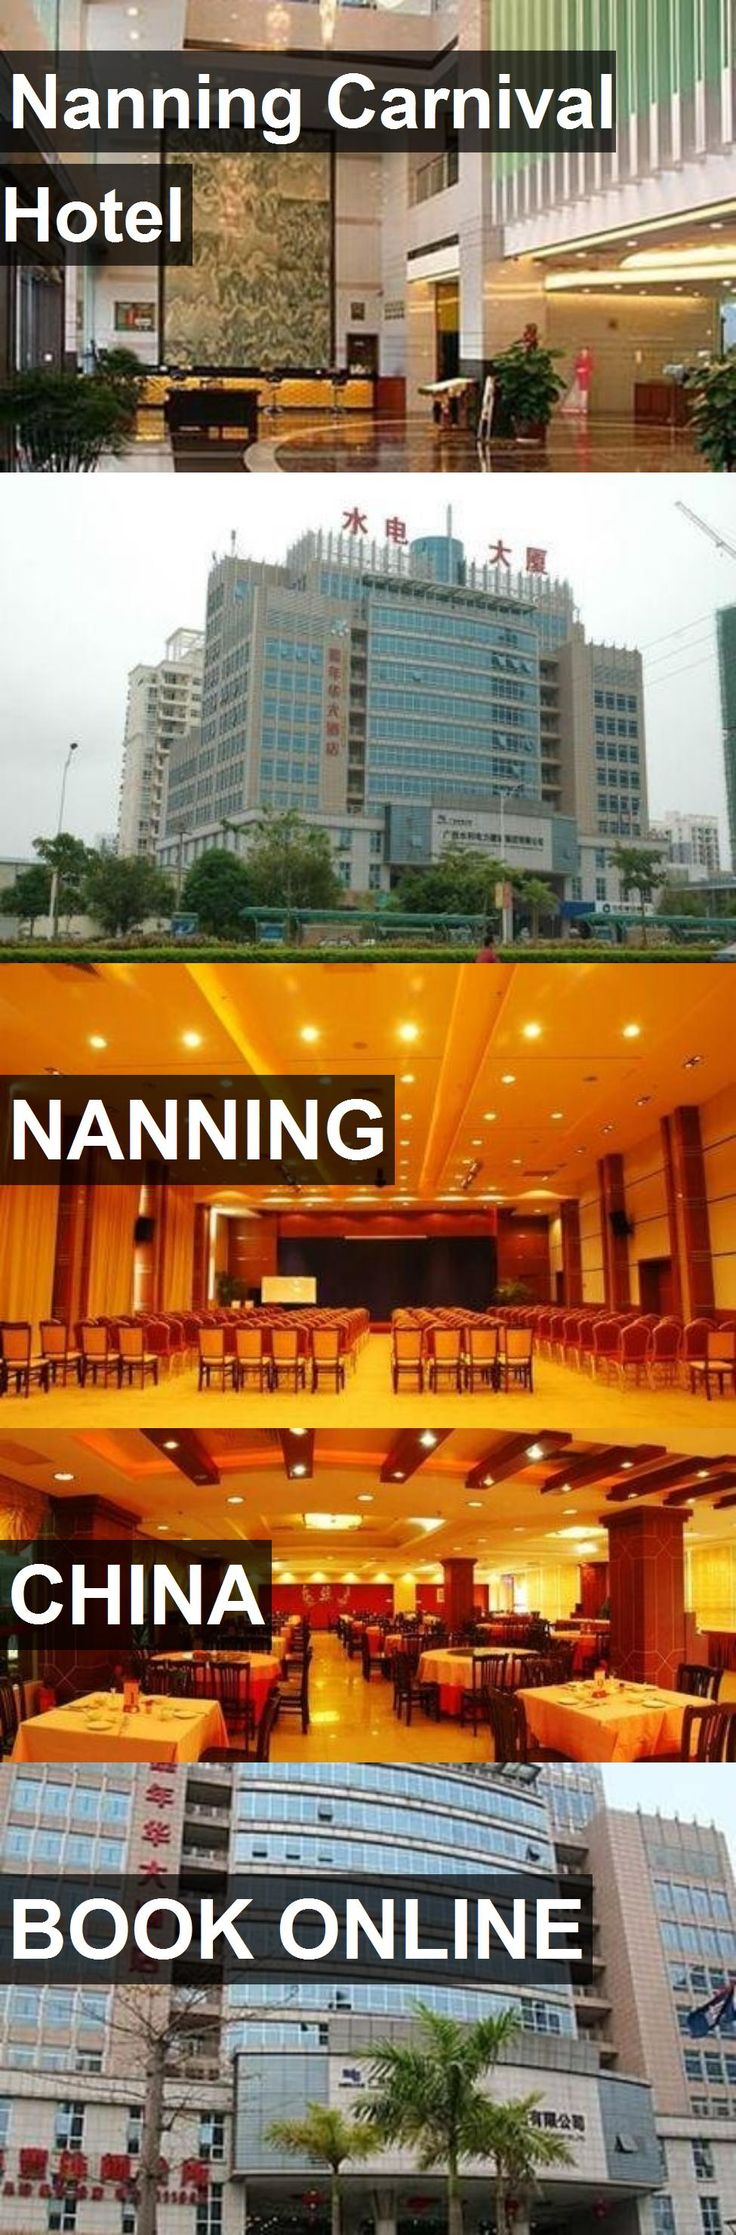 Nanning Carnival Hotel in Nanning, China. For more information, photos, reviews and best prices please follow the link. #China #Nanning #travel #vacation #hotel